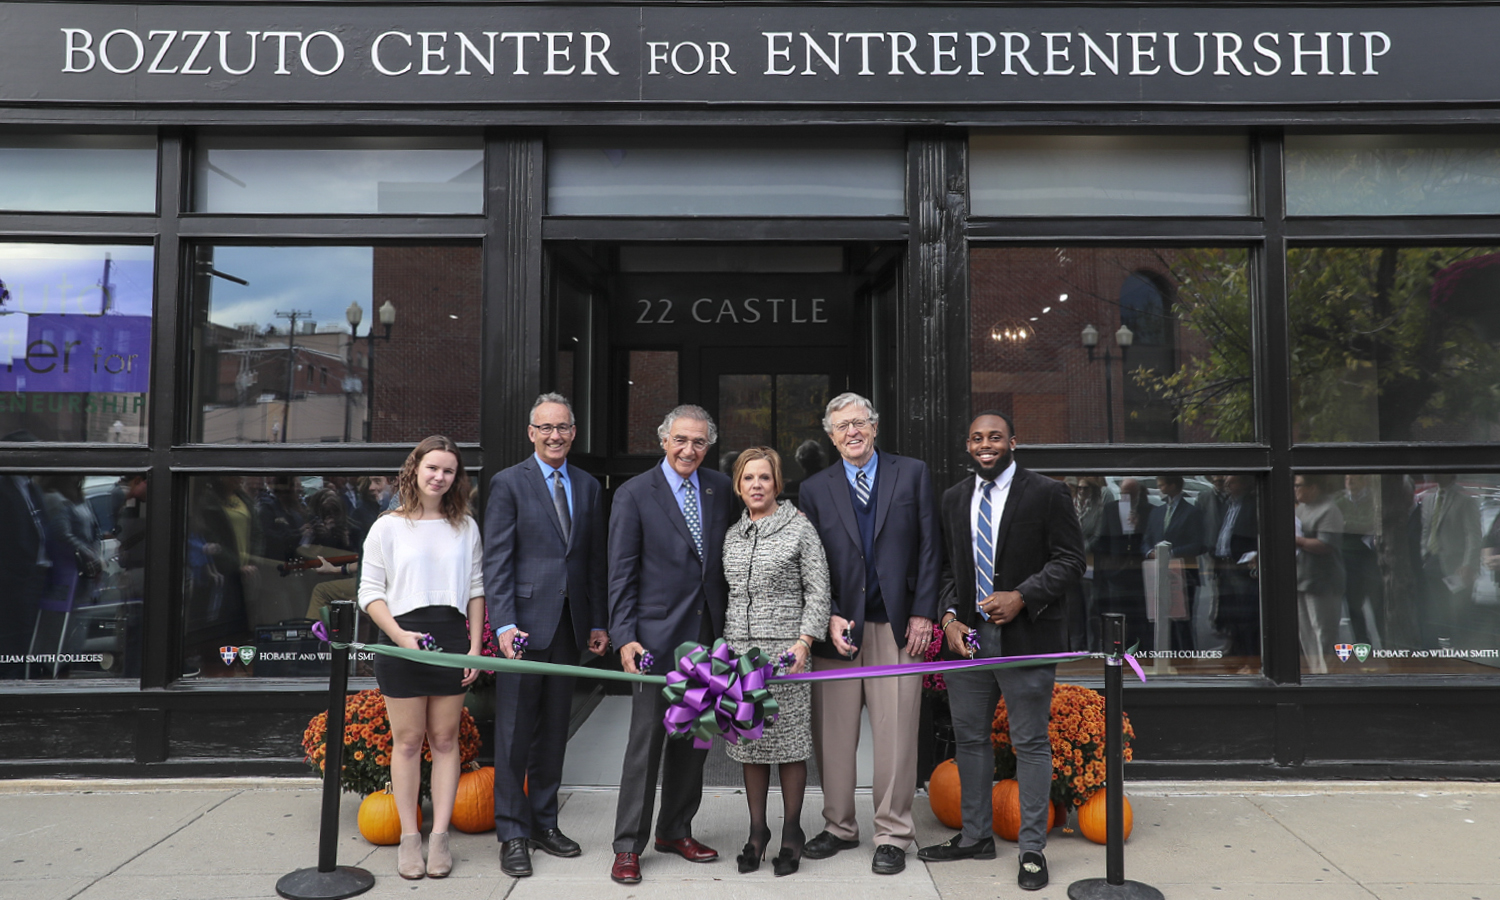 Chloe Elmer '20, Professor of Economics Thomas Drennen, Board Chair Thomas S. Bozzuto '68 L.H.D. '18, Barbara M. Bozzuto, Interim President Patrick A. McGuire L.H.D. '12 and Al Smith '19​ pose for a photo during the ribbon-cutting ceremony of the new Bozzuto Center on Castle Street.